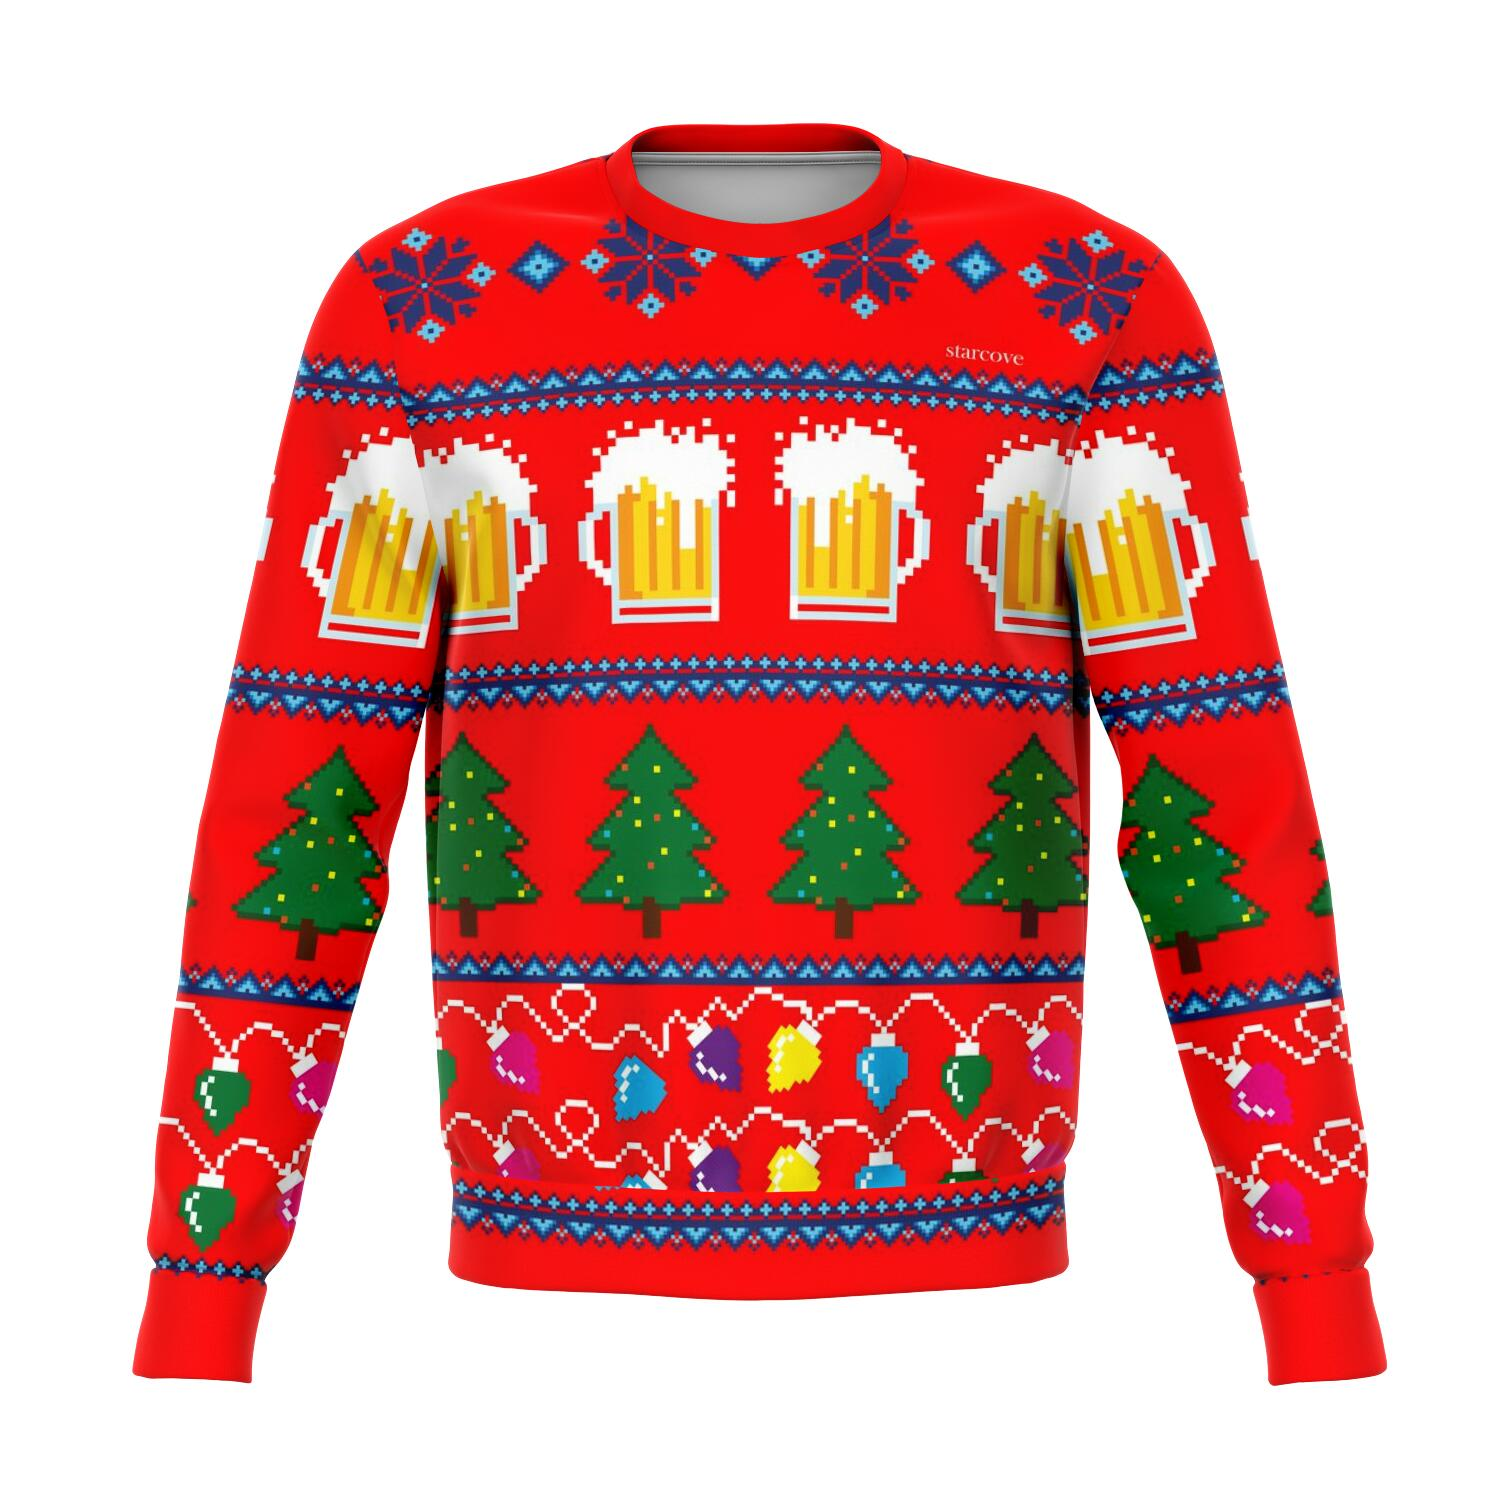 Ugly Christmas Sweater, Party Funny Men Women Lights Beer Stein glass Drinking Bar Tree Xmas Holiday Snowflakes Red Sweatshirt Top - Starcove Design